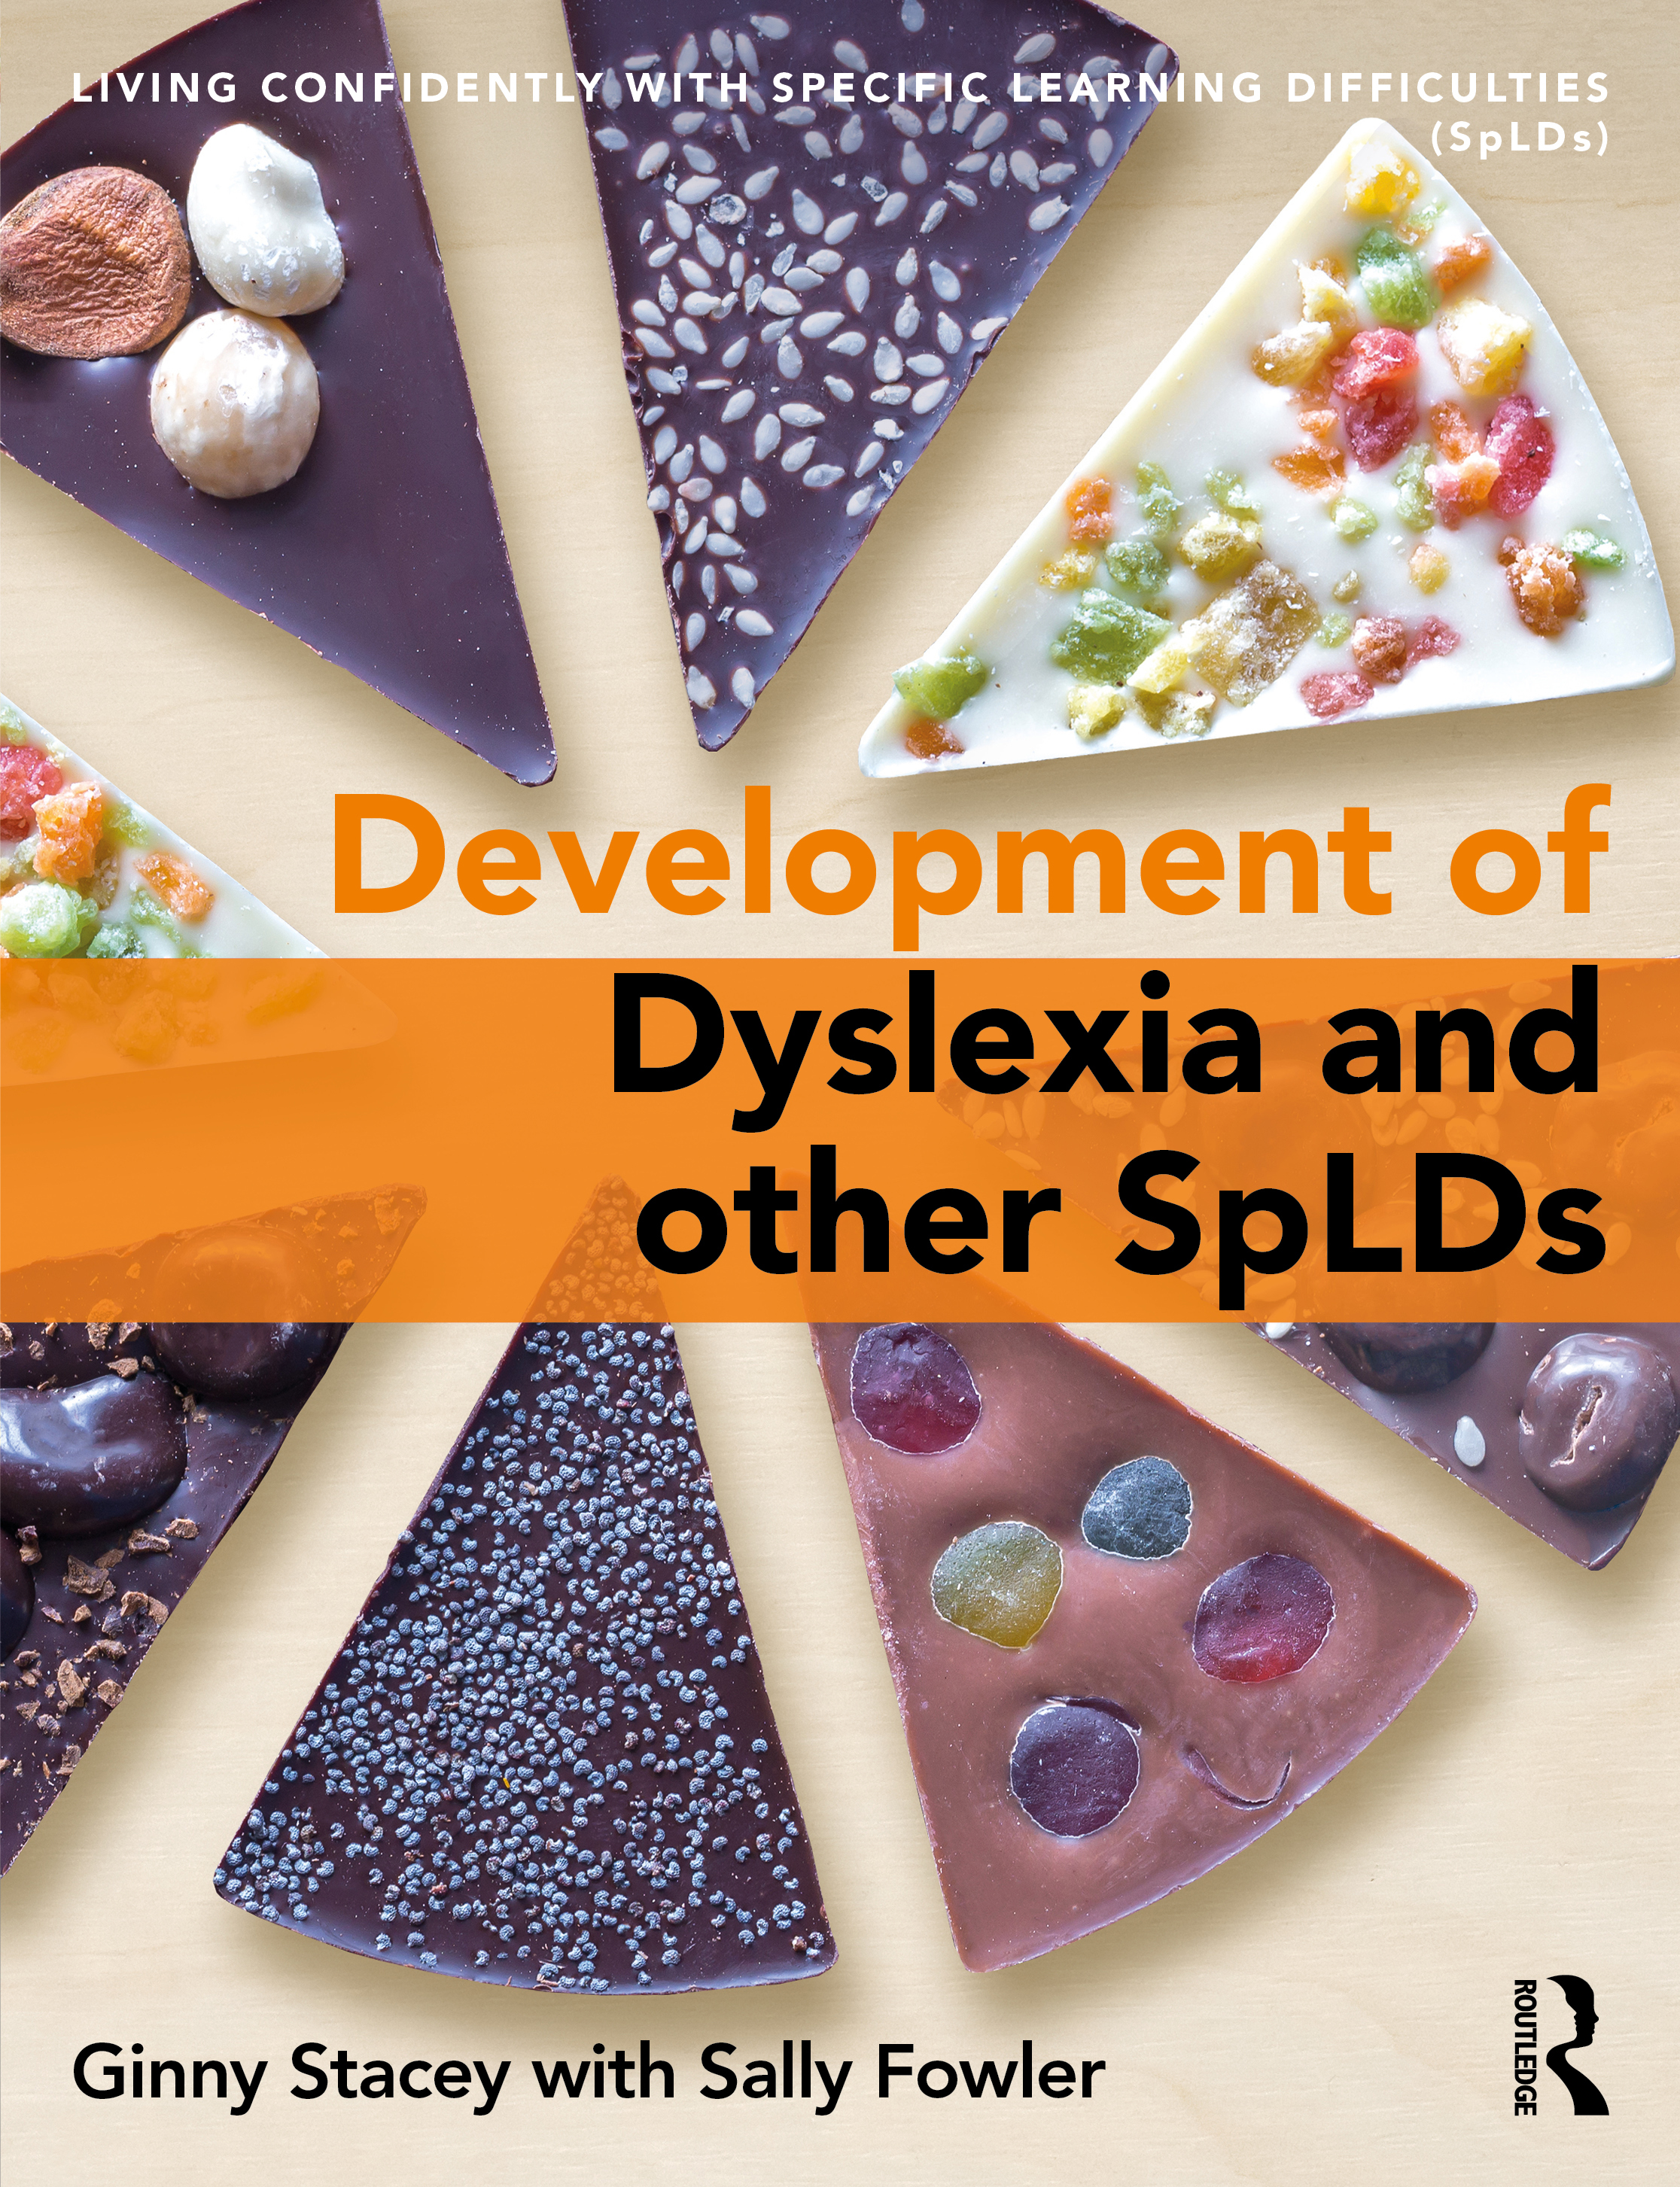 The Development of SpLD: Living Confidently with Dyslexia book cover